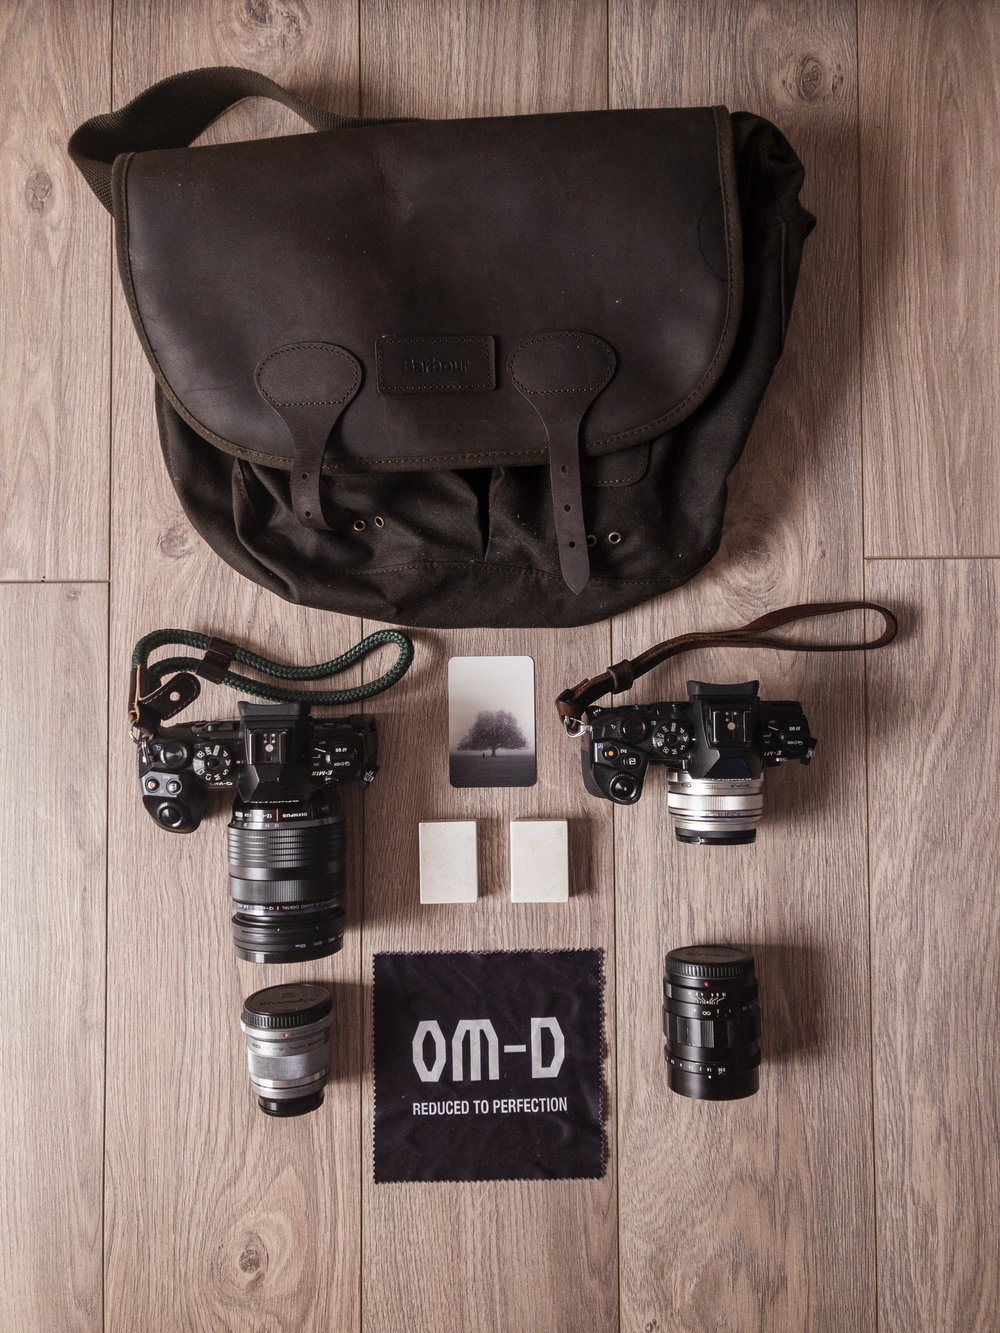 My street photography kit - The equipment I use consists of two bodies, four lenses, and four batteries (one inside each body). Weighing in at only 2.3kg*taken on iPhone X